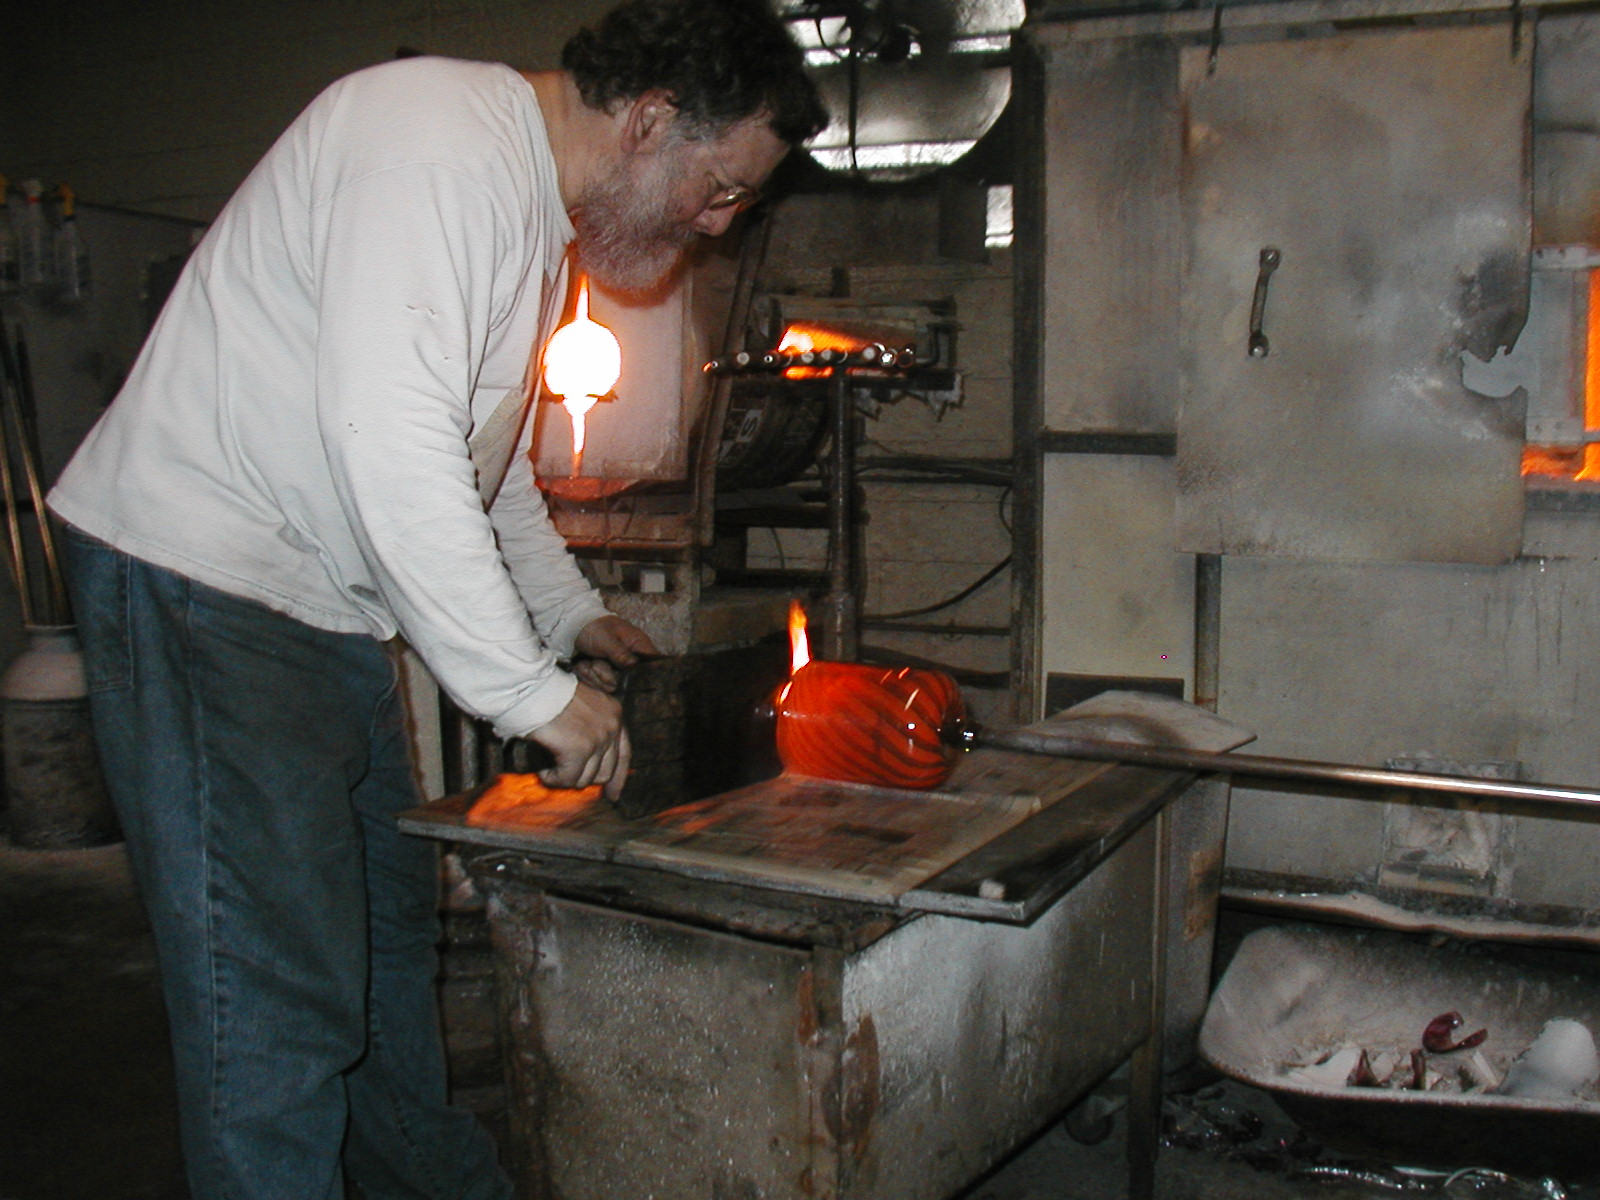 Glassblower.Info - Joel Bless Glasslight Glassblowing class January 18 2004 #115